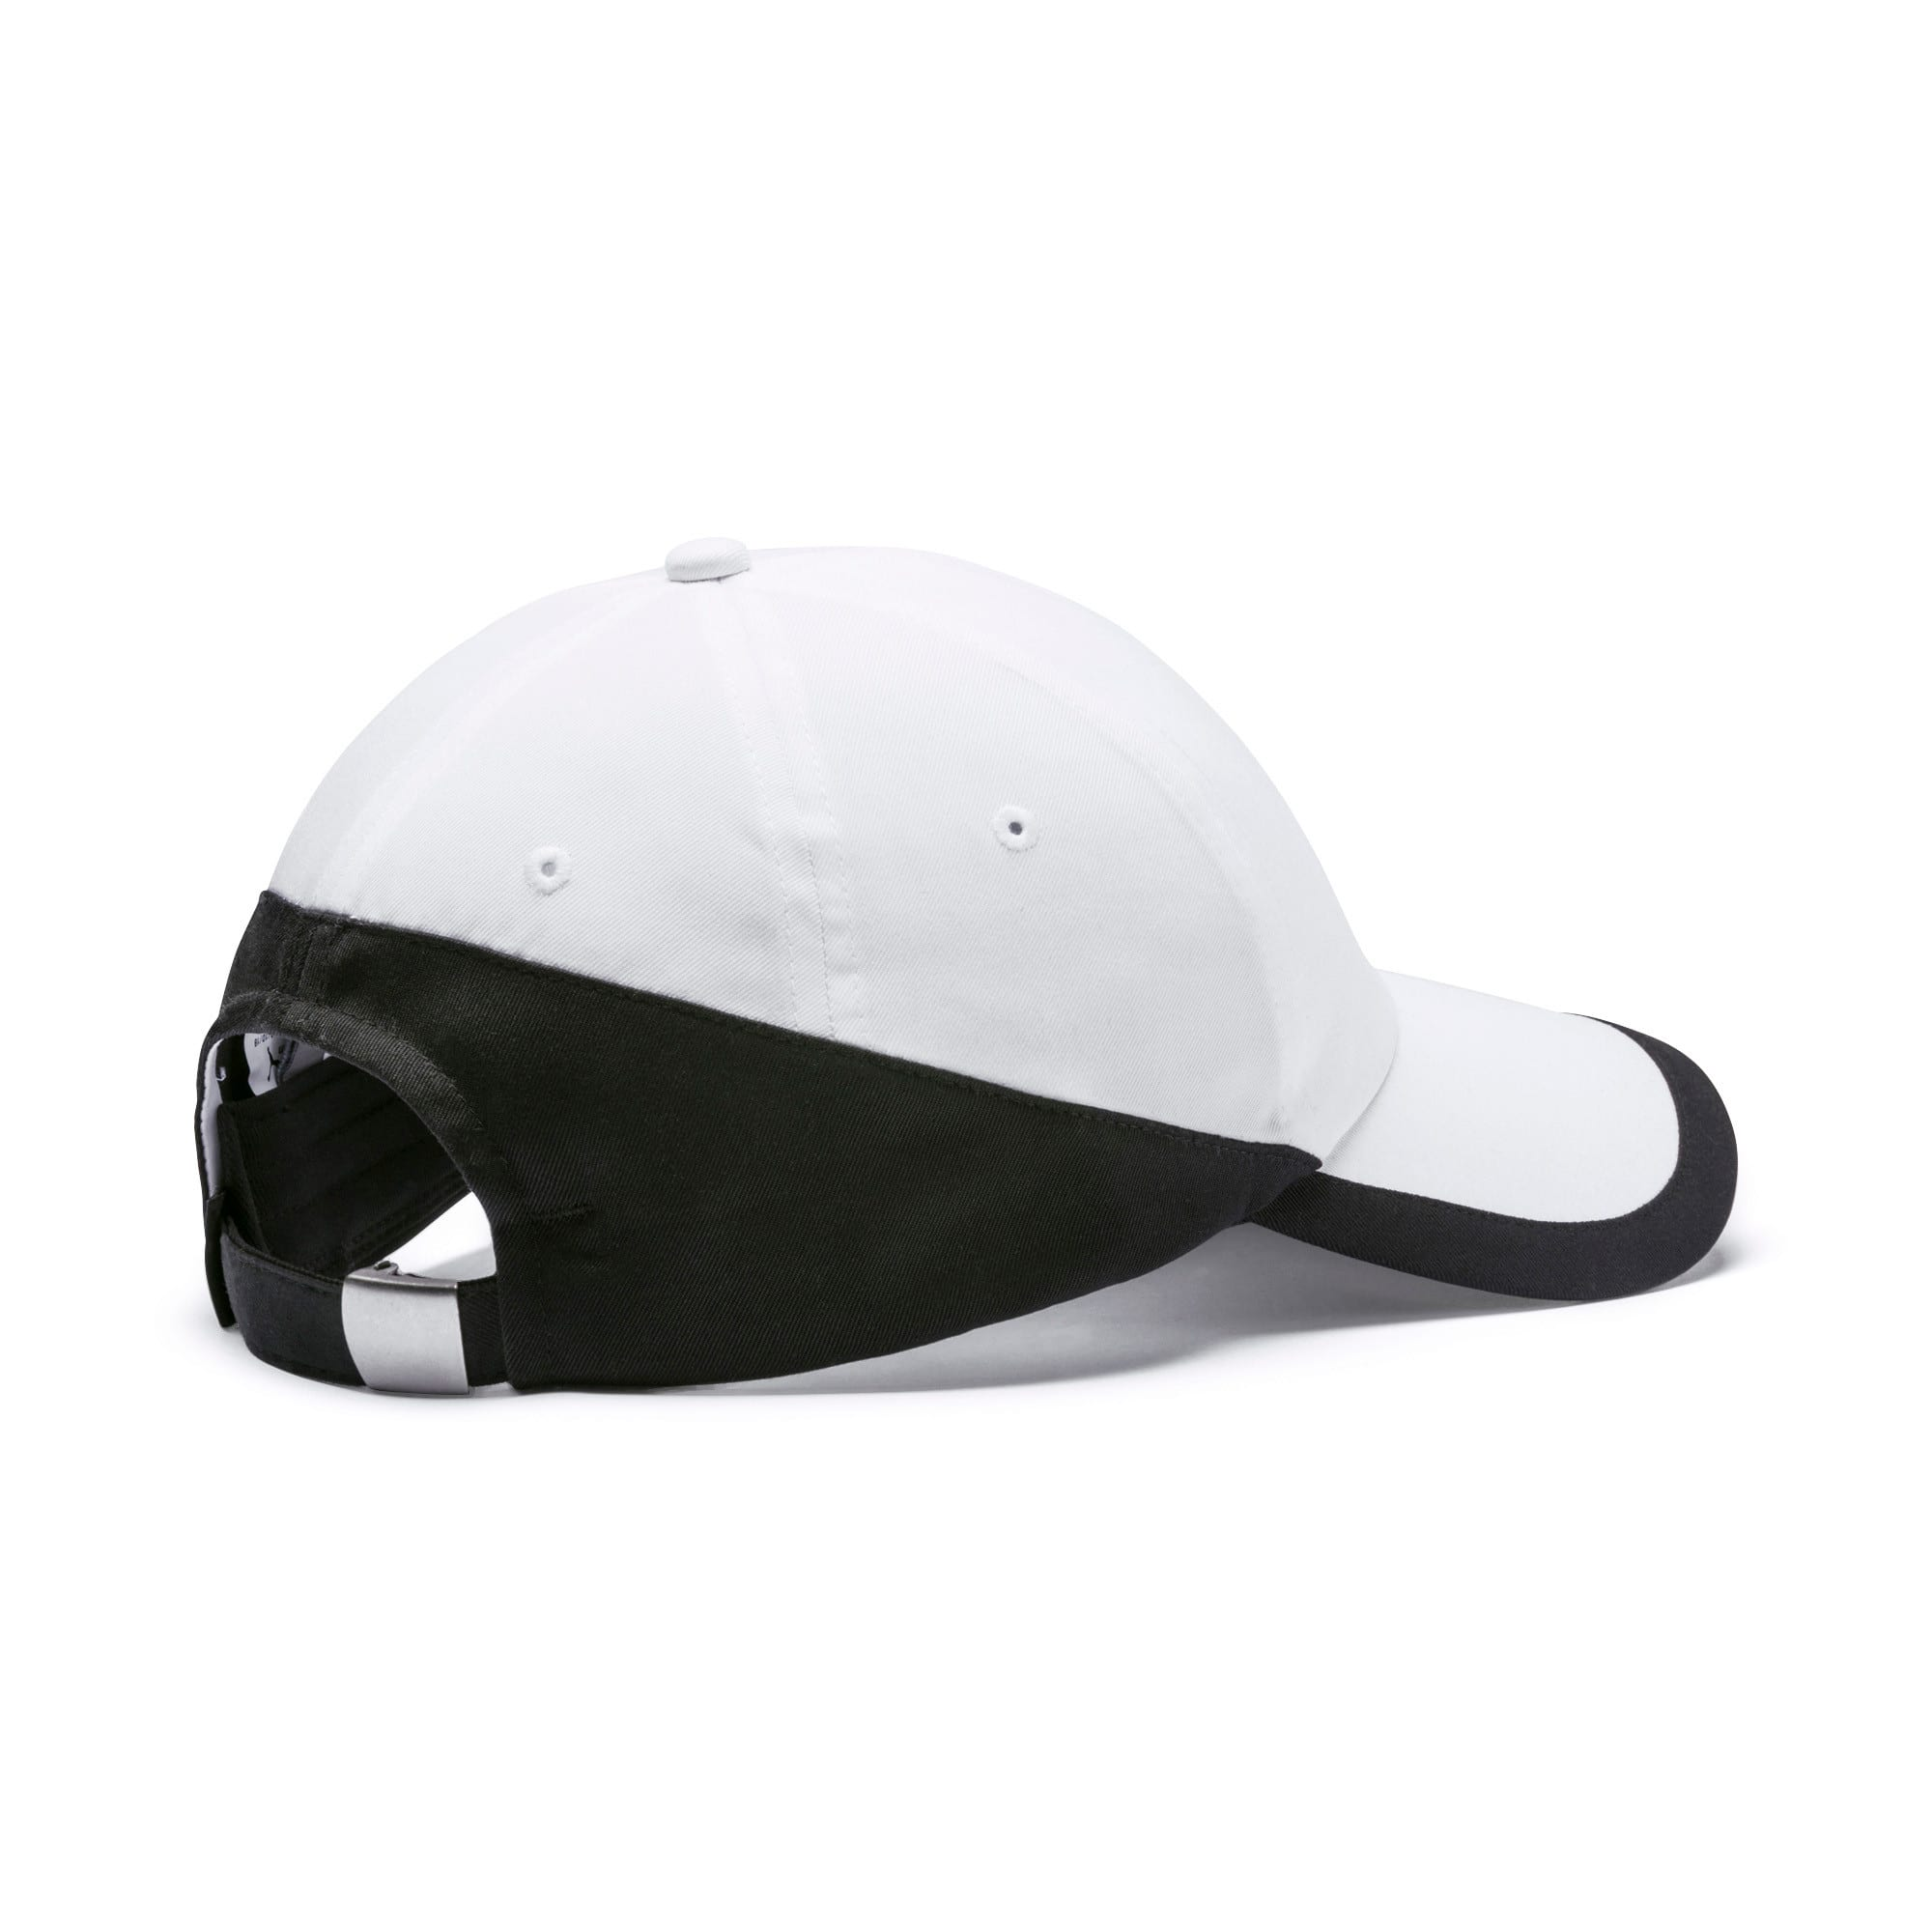 Thumbnail 2 of Premium Archive BB cap, Puma White-Puma Black, medium